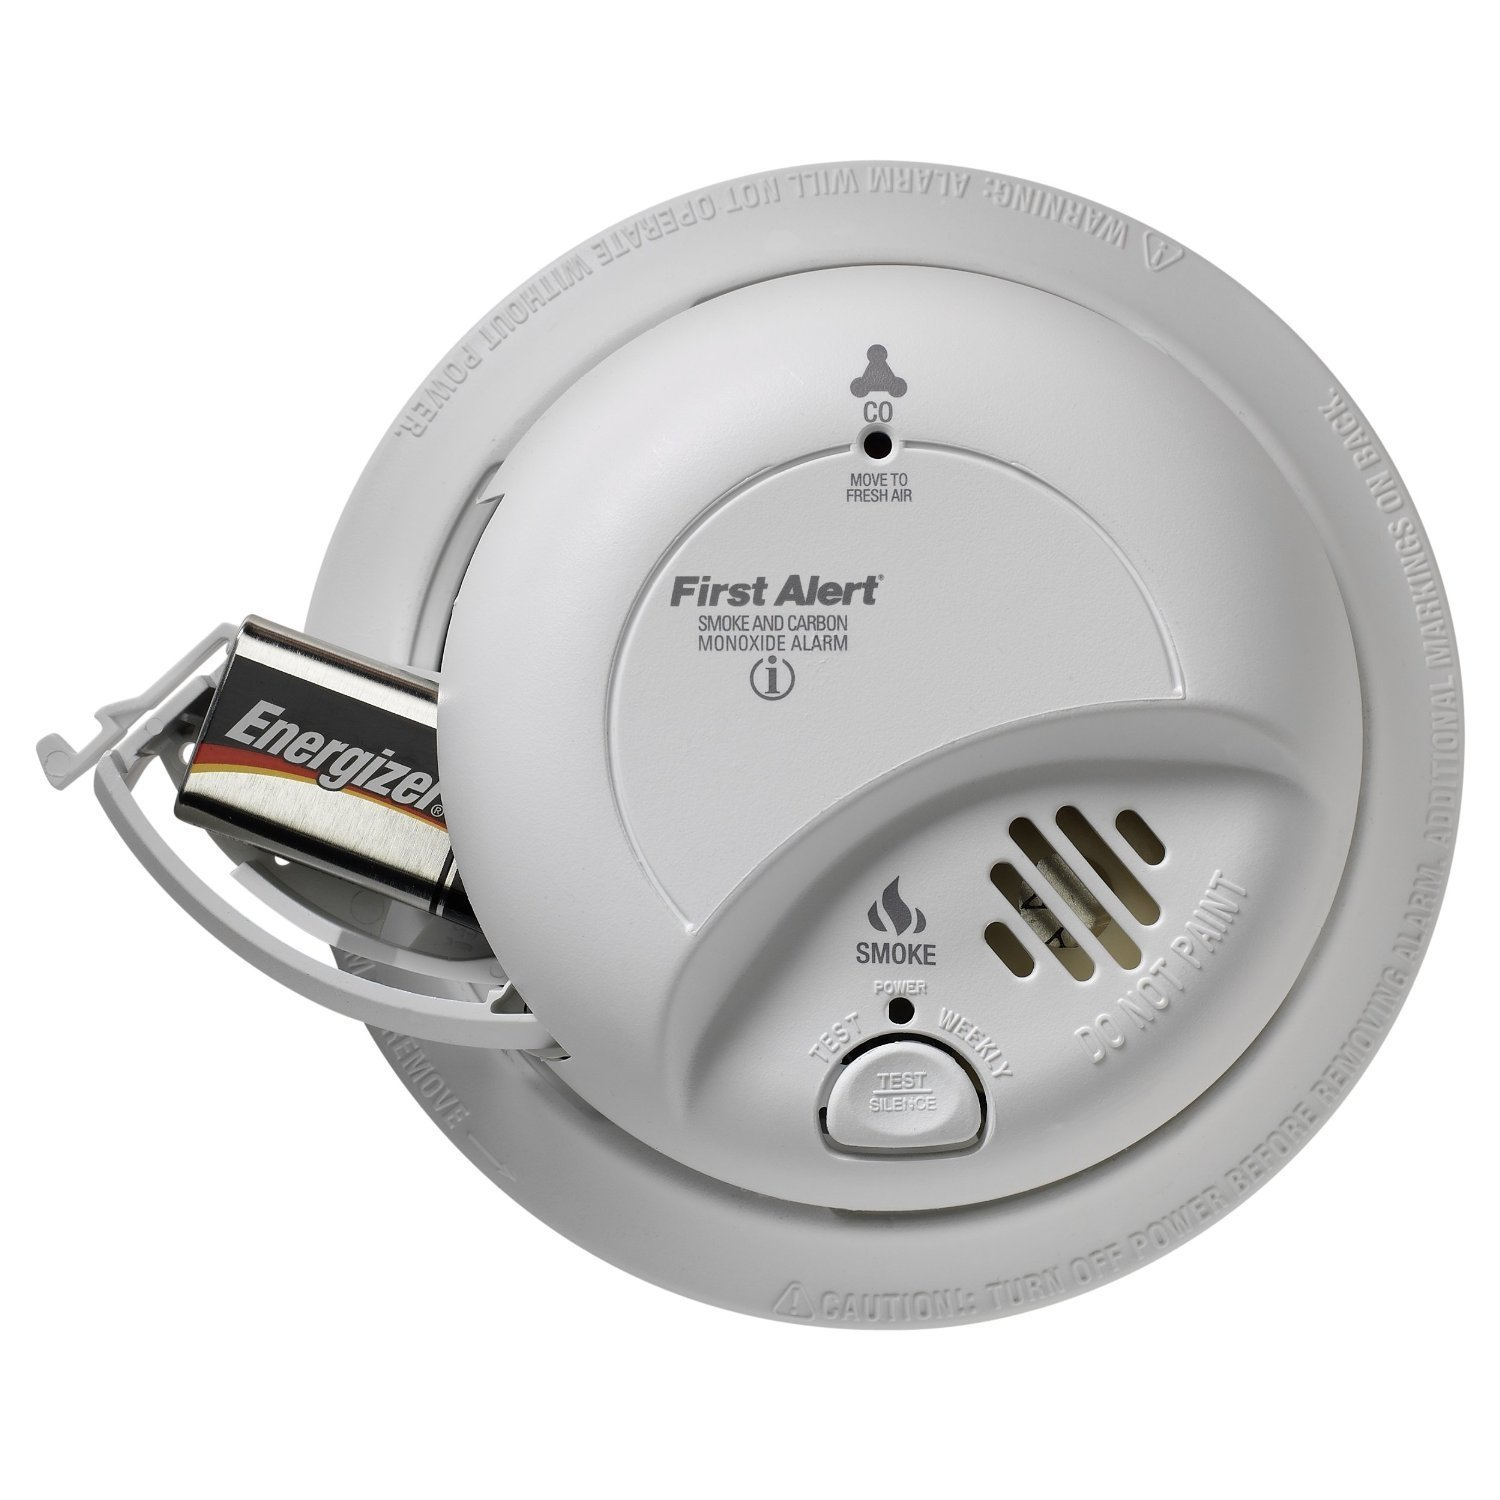 BRK SC9120B Smoke and Carbon Monoxide Alarms and Detectors Lot of 10 by BRK Brands (Image #3)